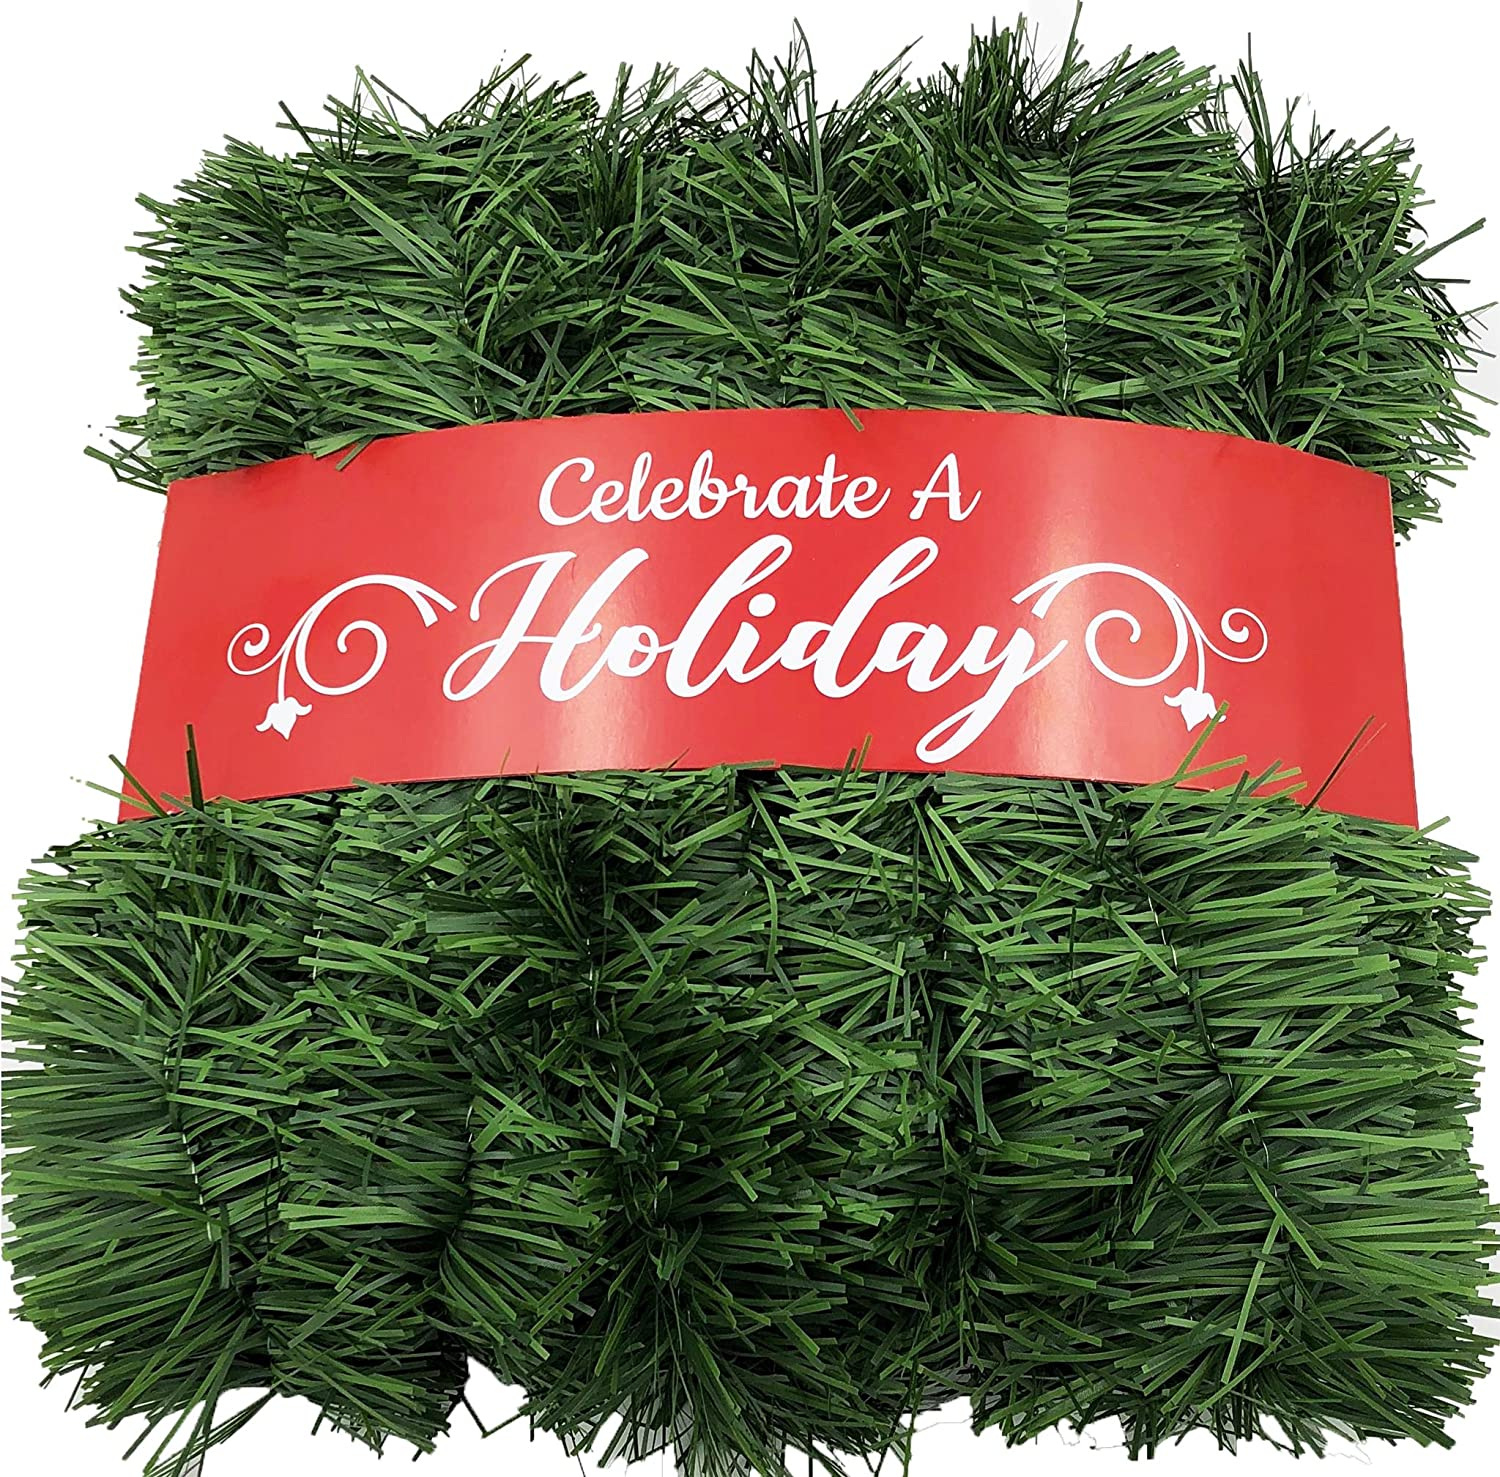 50 Foot Garland for Christmas Decorations - Non-Lit Soft Green Holiday Decor for Outdoor or Indoor Use - Premium Quality Home Garden Artificial Greenery, or Wedding Party Decorations Celebrate A Holiday